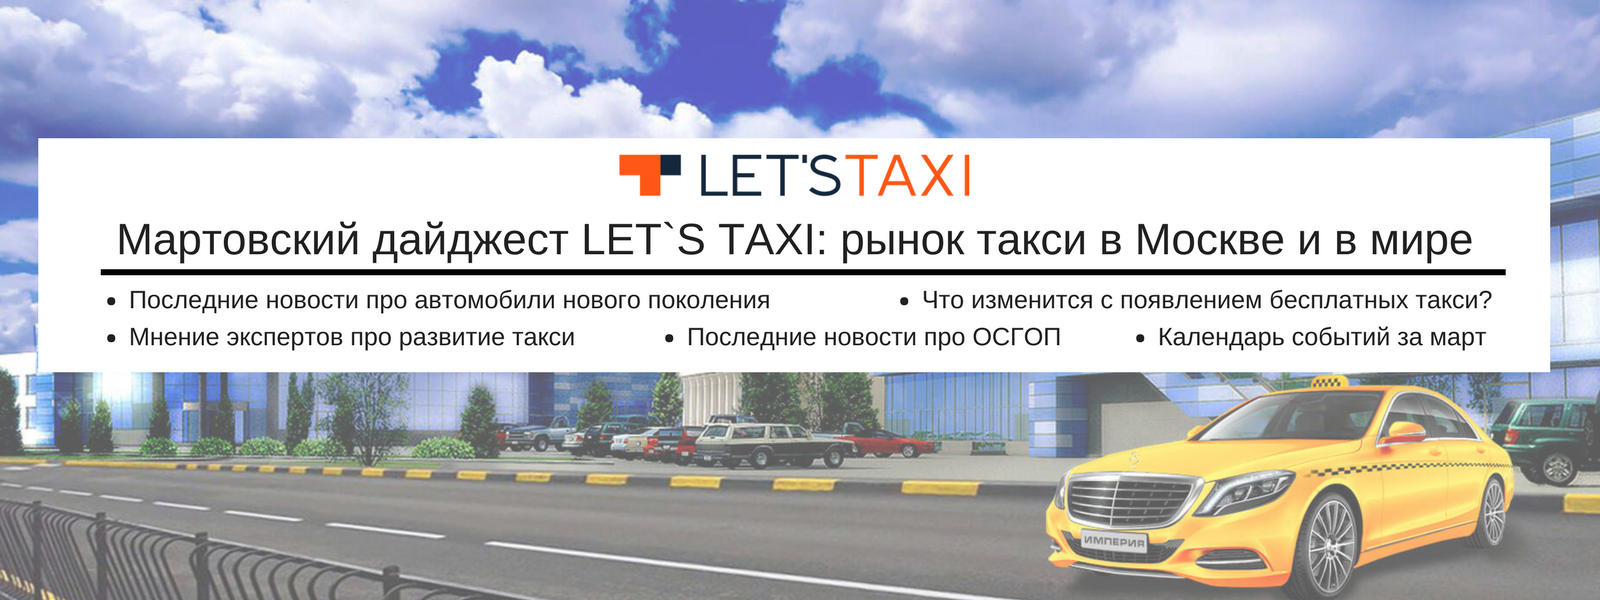 Let`s taxi про рынок такси